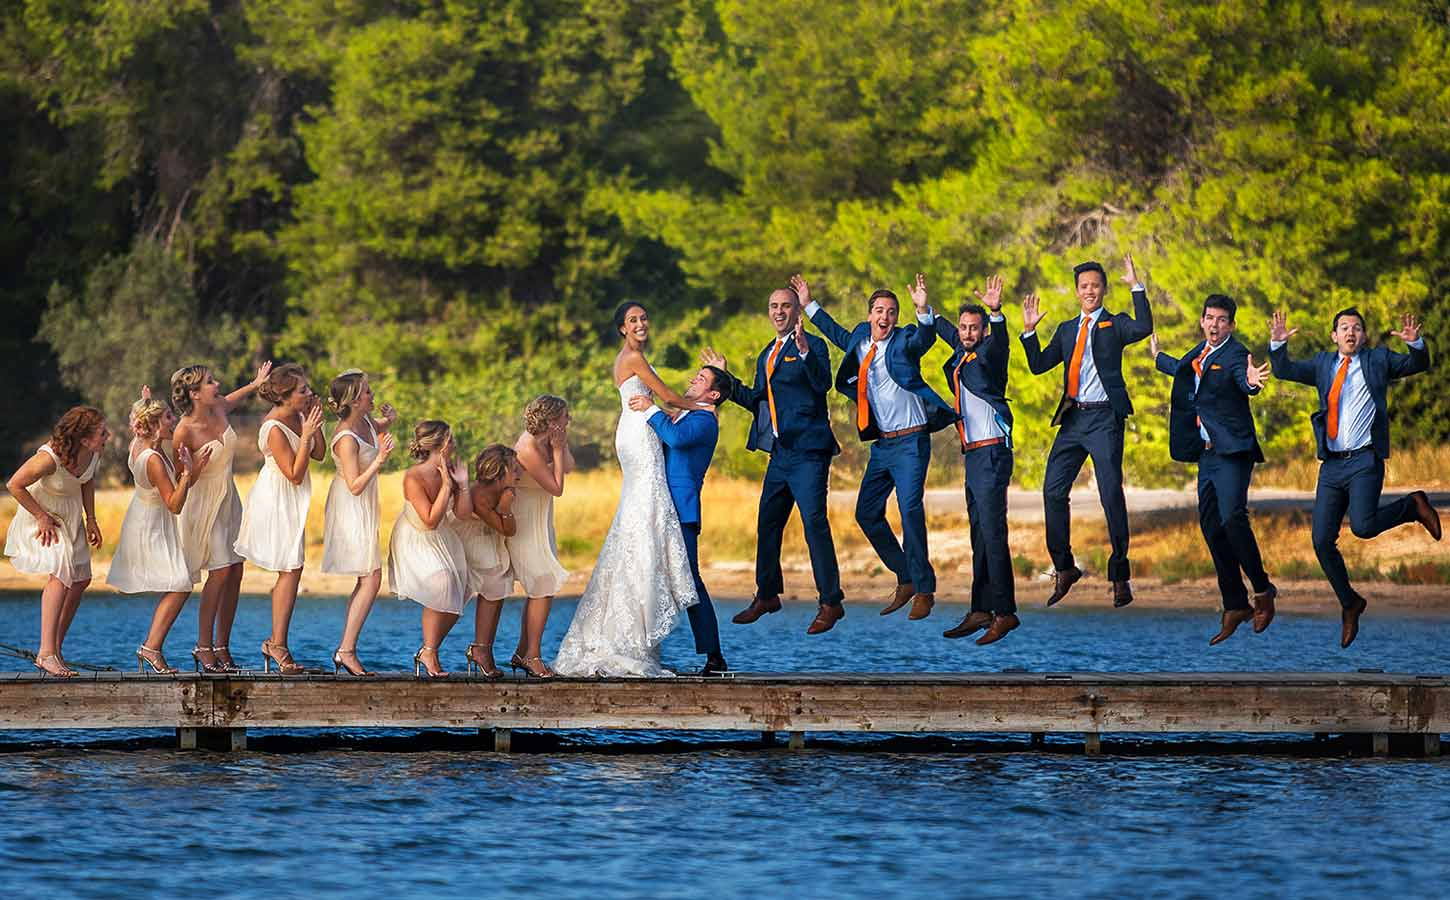 Amazing Photo Shooting for a Wedding at Porto Heli in Greece |  Tips For Brides for a Greece Wedding | Diamond Events Wedding Planner